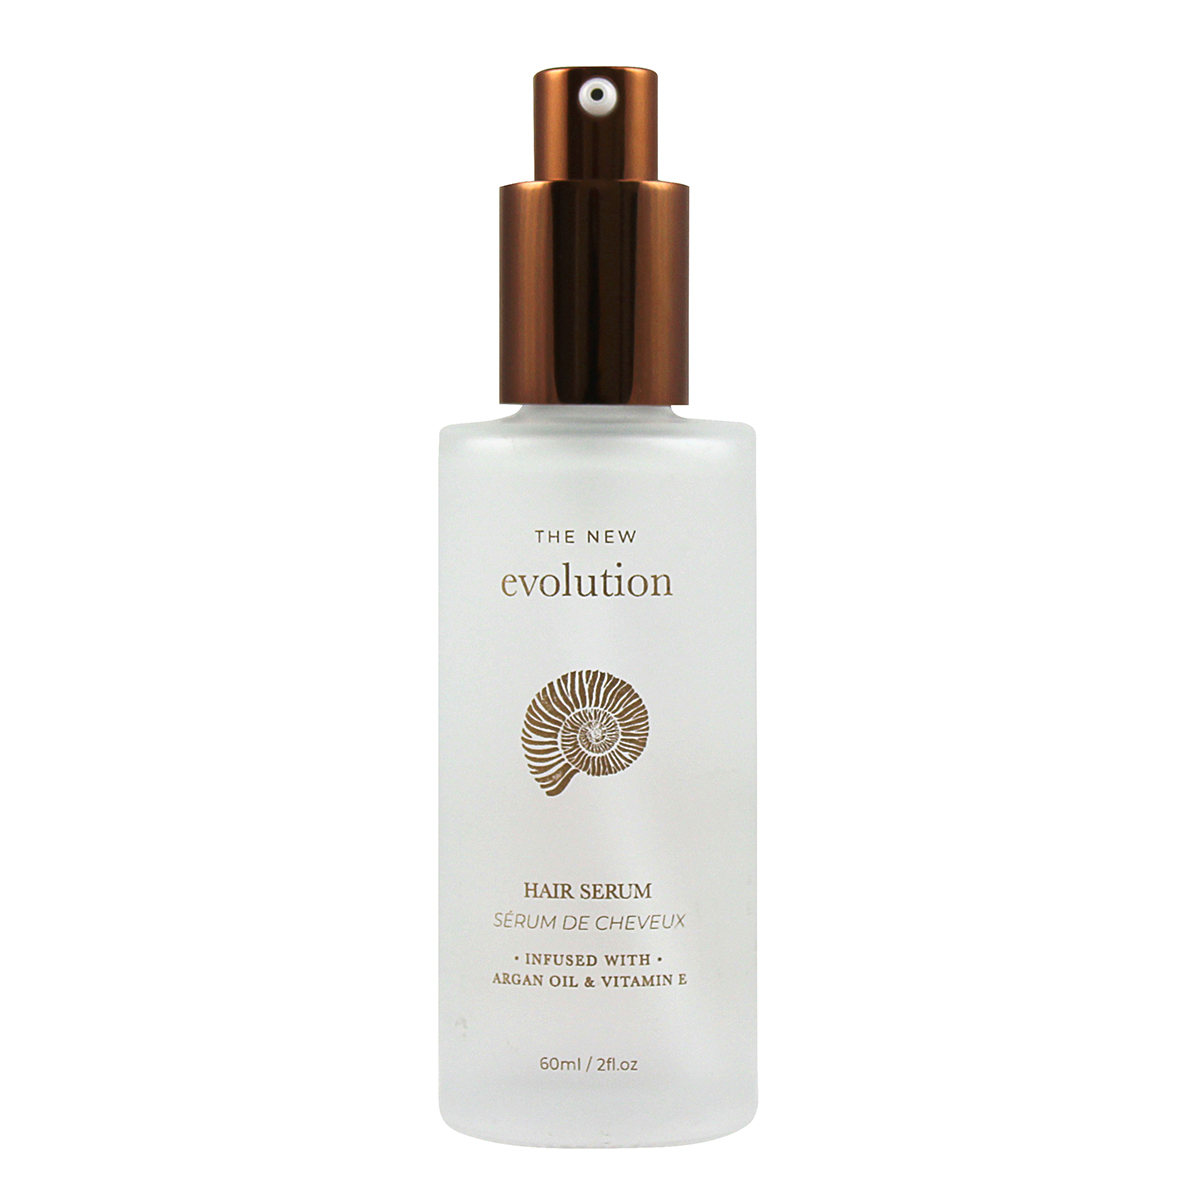 0000 evolution hair serum front